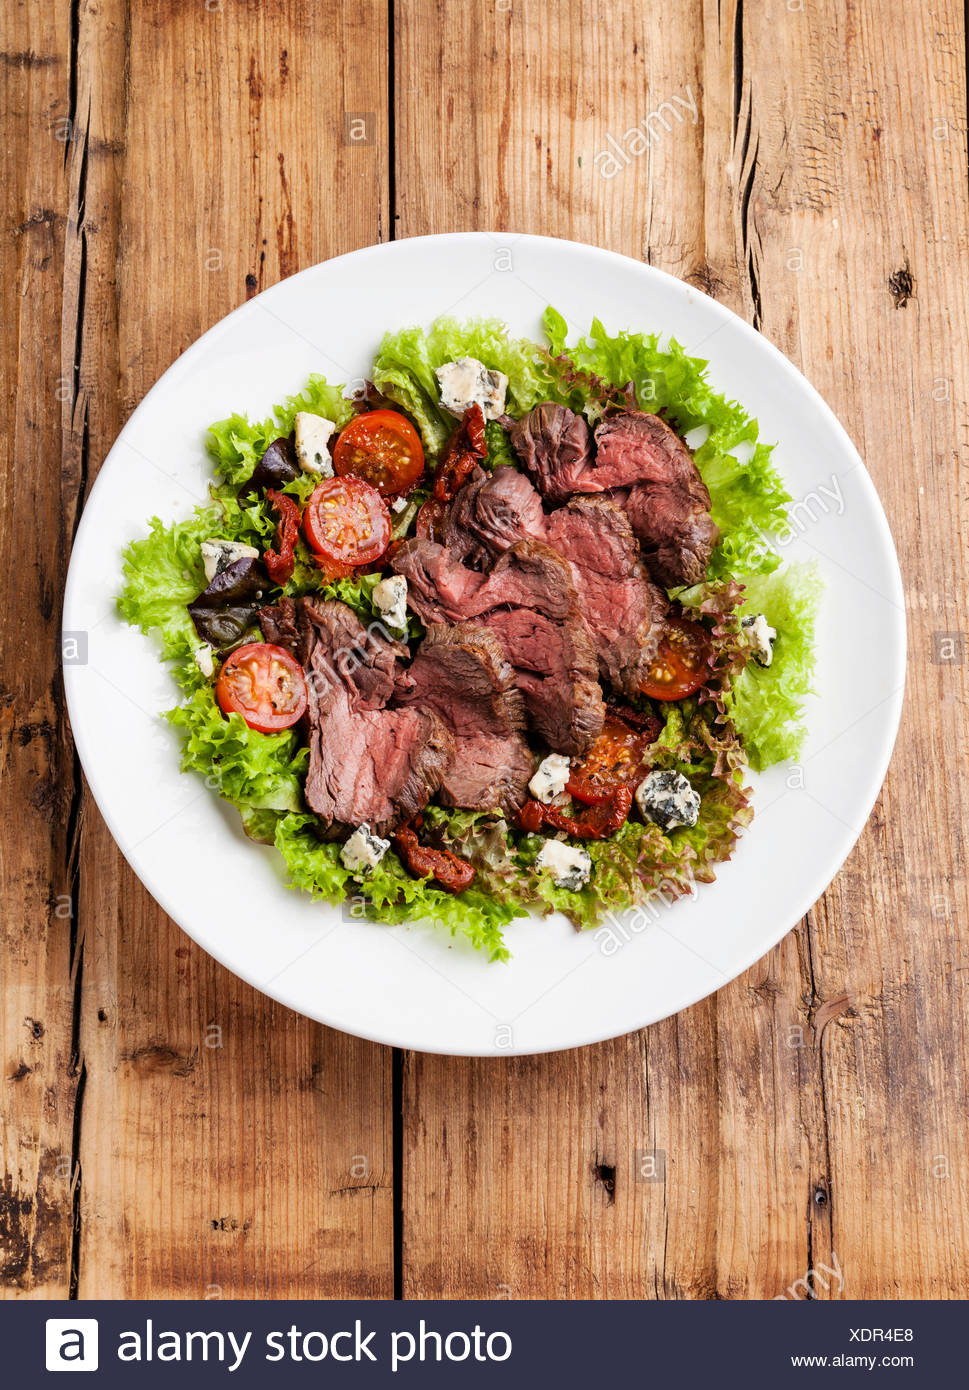 Salad leaves with sliced roast beef and sun-dried cherry tomatoes on wooden background - Stock Image